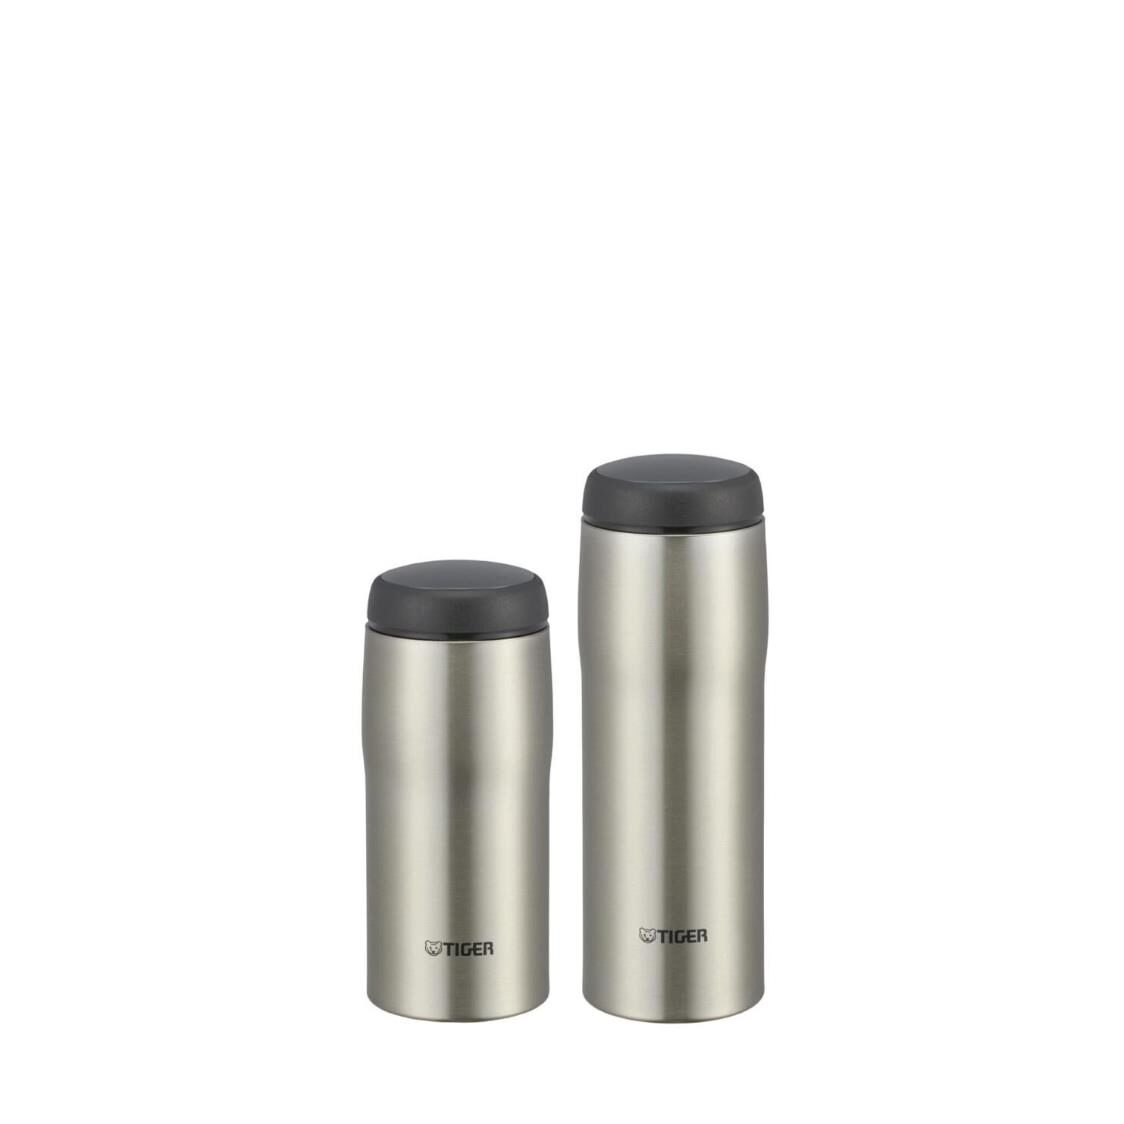 Tiger Bundle - 360ml  480ml Double Stainless Steel Mug Set Clear Stainless